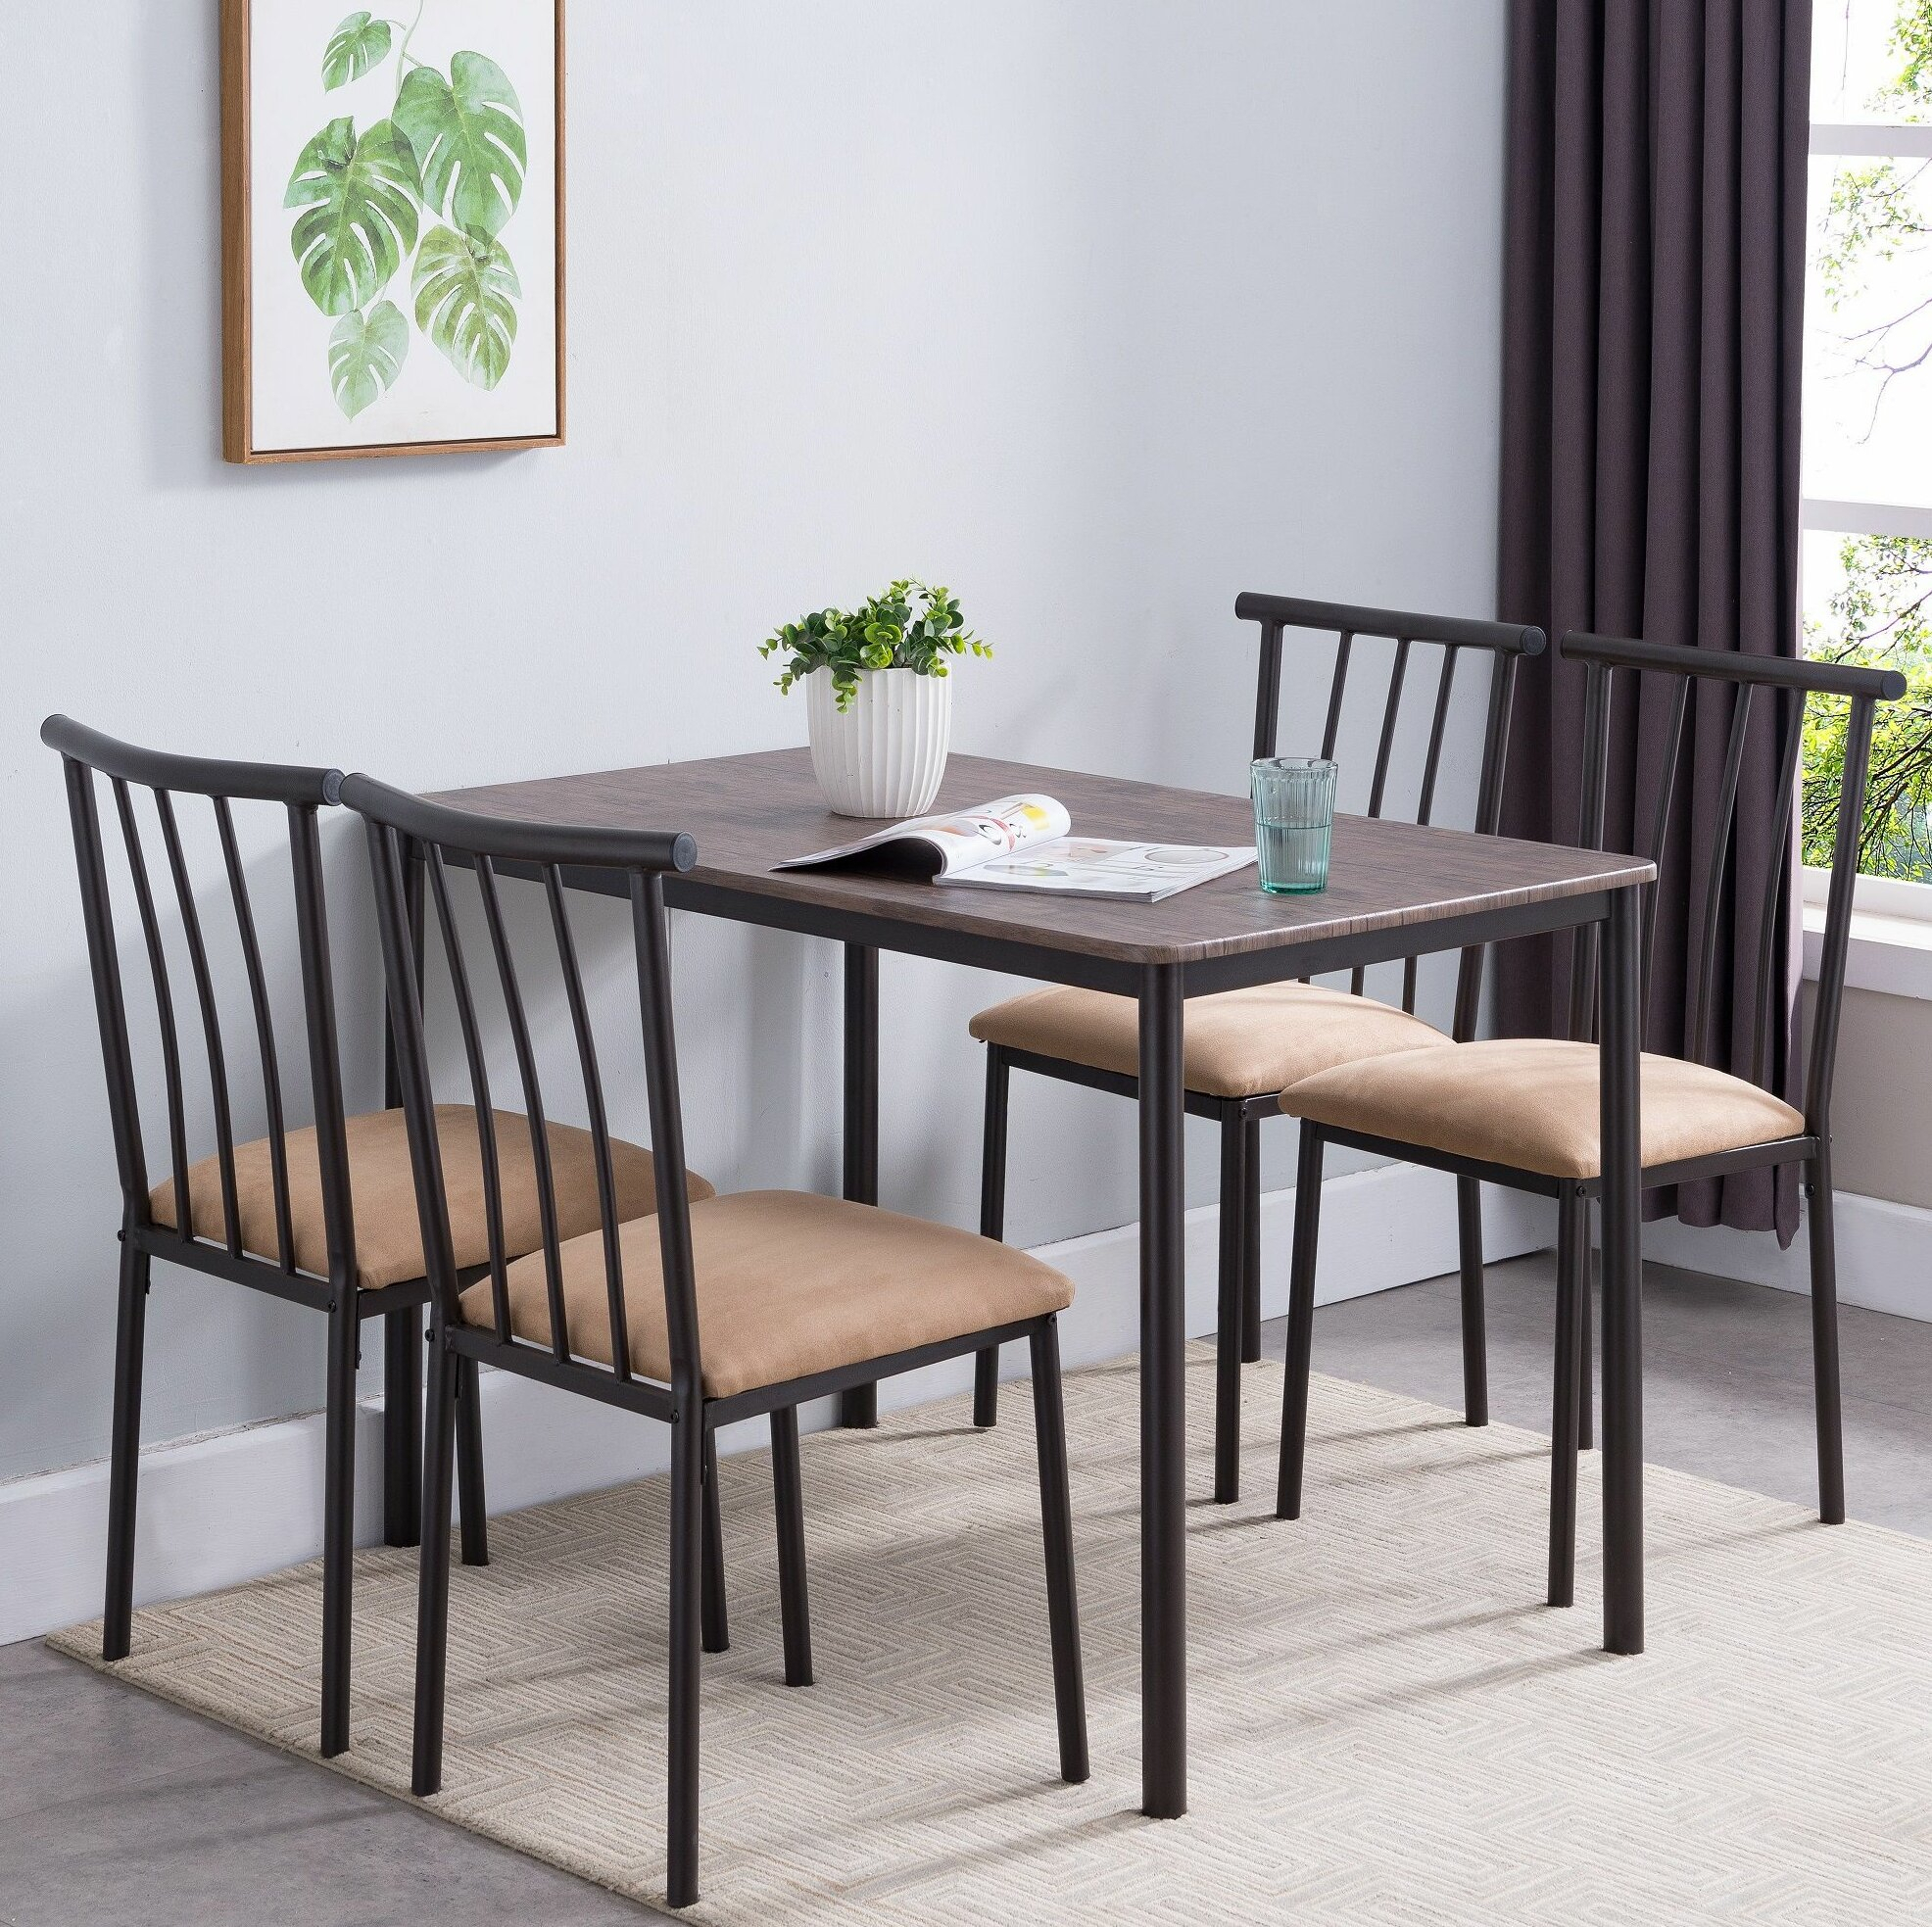 Stclair 5 Piece Dining Set Throughout 2018 Telauges 5 Piece Dining Sets (View 6 of 20)